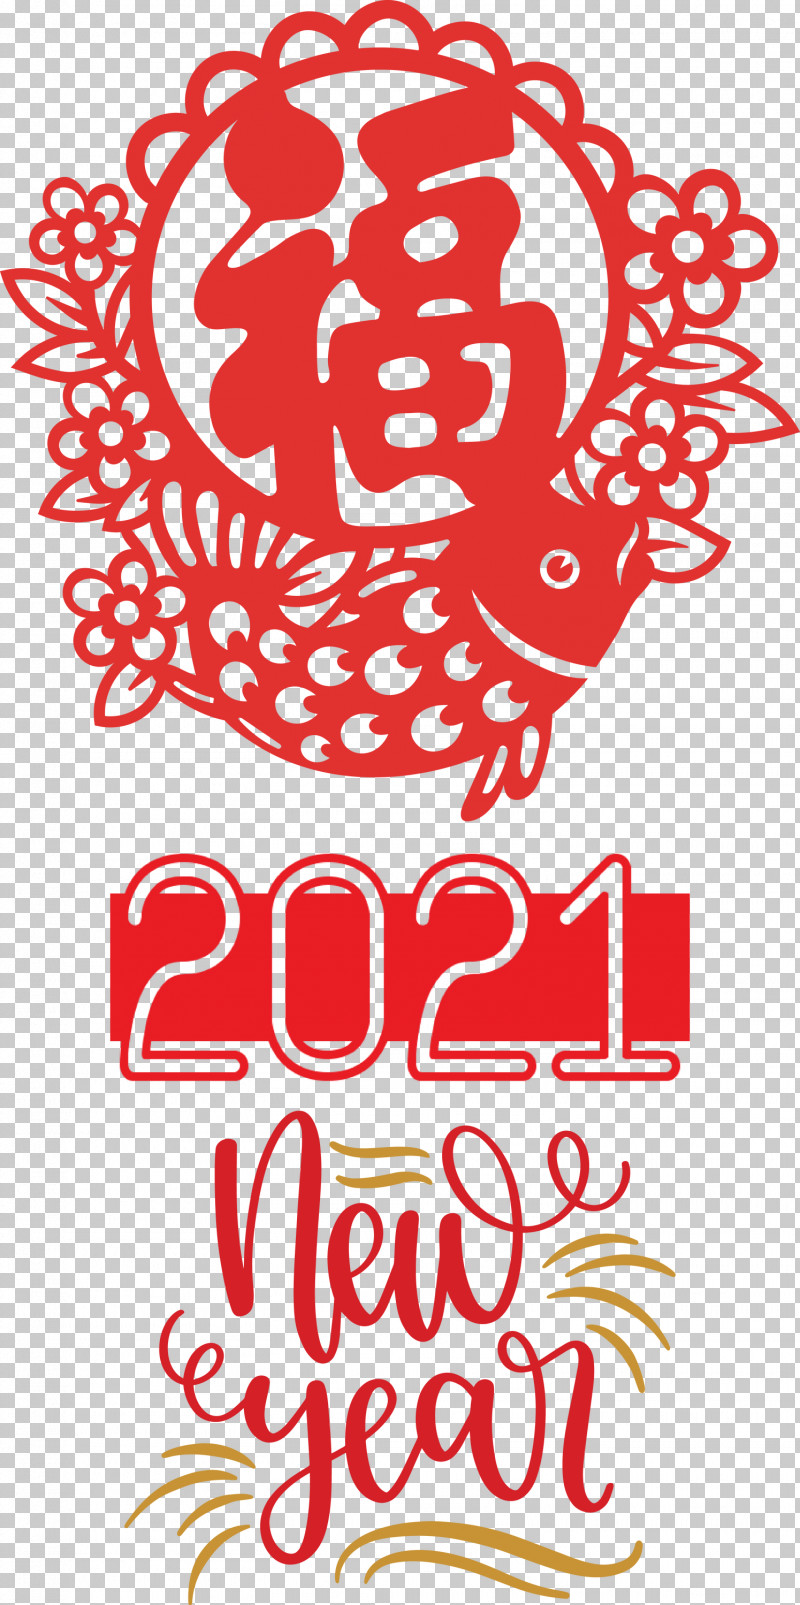 Happy Chinese New Year 2021 Chinese New Year Happy New Year PNG, Clipart, 2021 Chinese New Year, Chinese New Year, Creativity, Data, Flower Free PNG Download